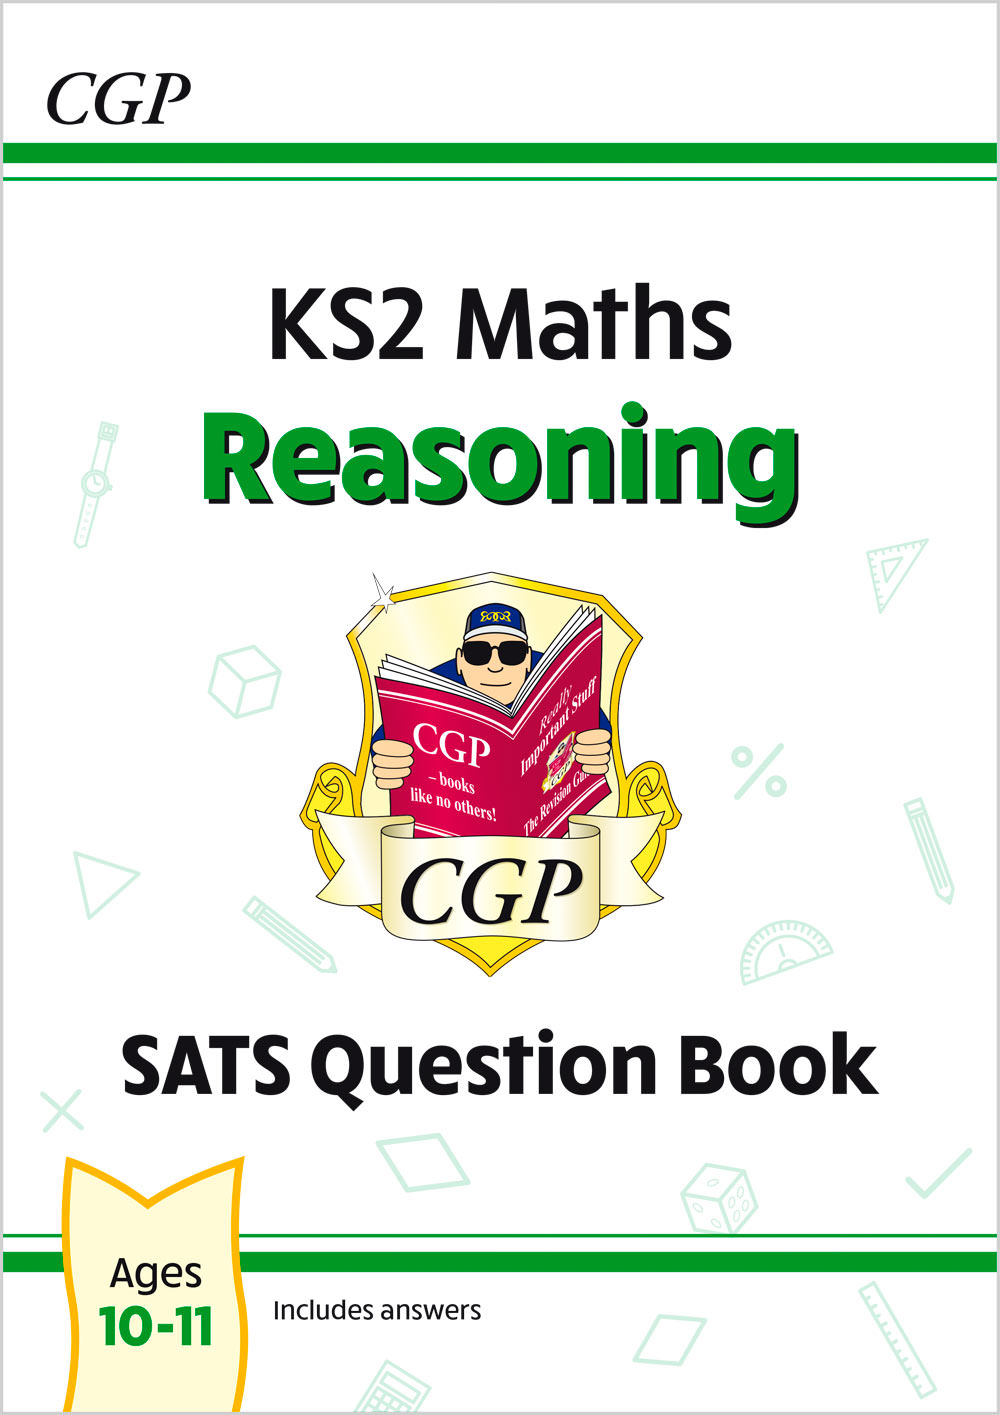 M6RQ21 - New KS2 Maths SATS Question Book: Reasoning - Ages 10-11